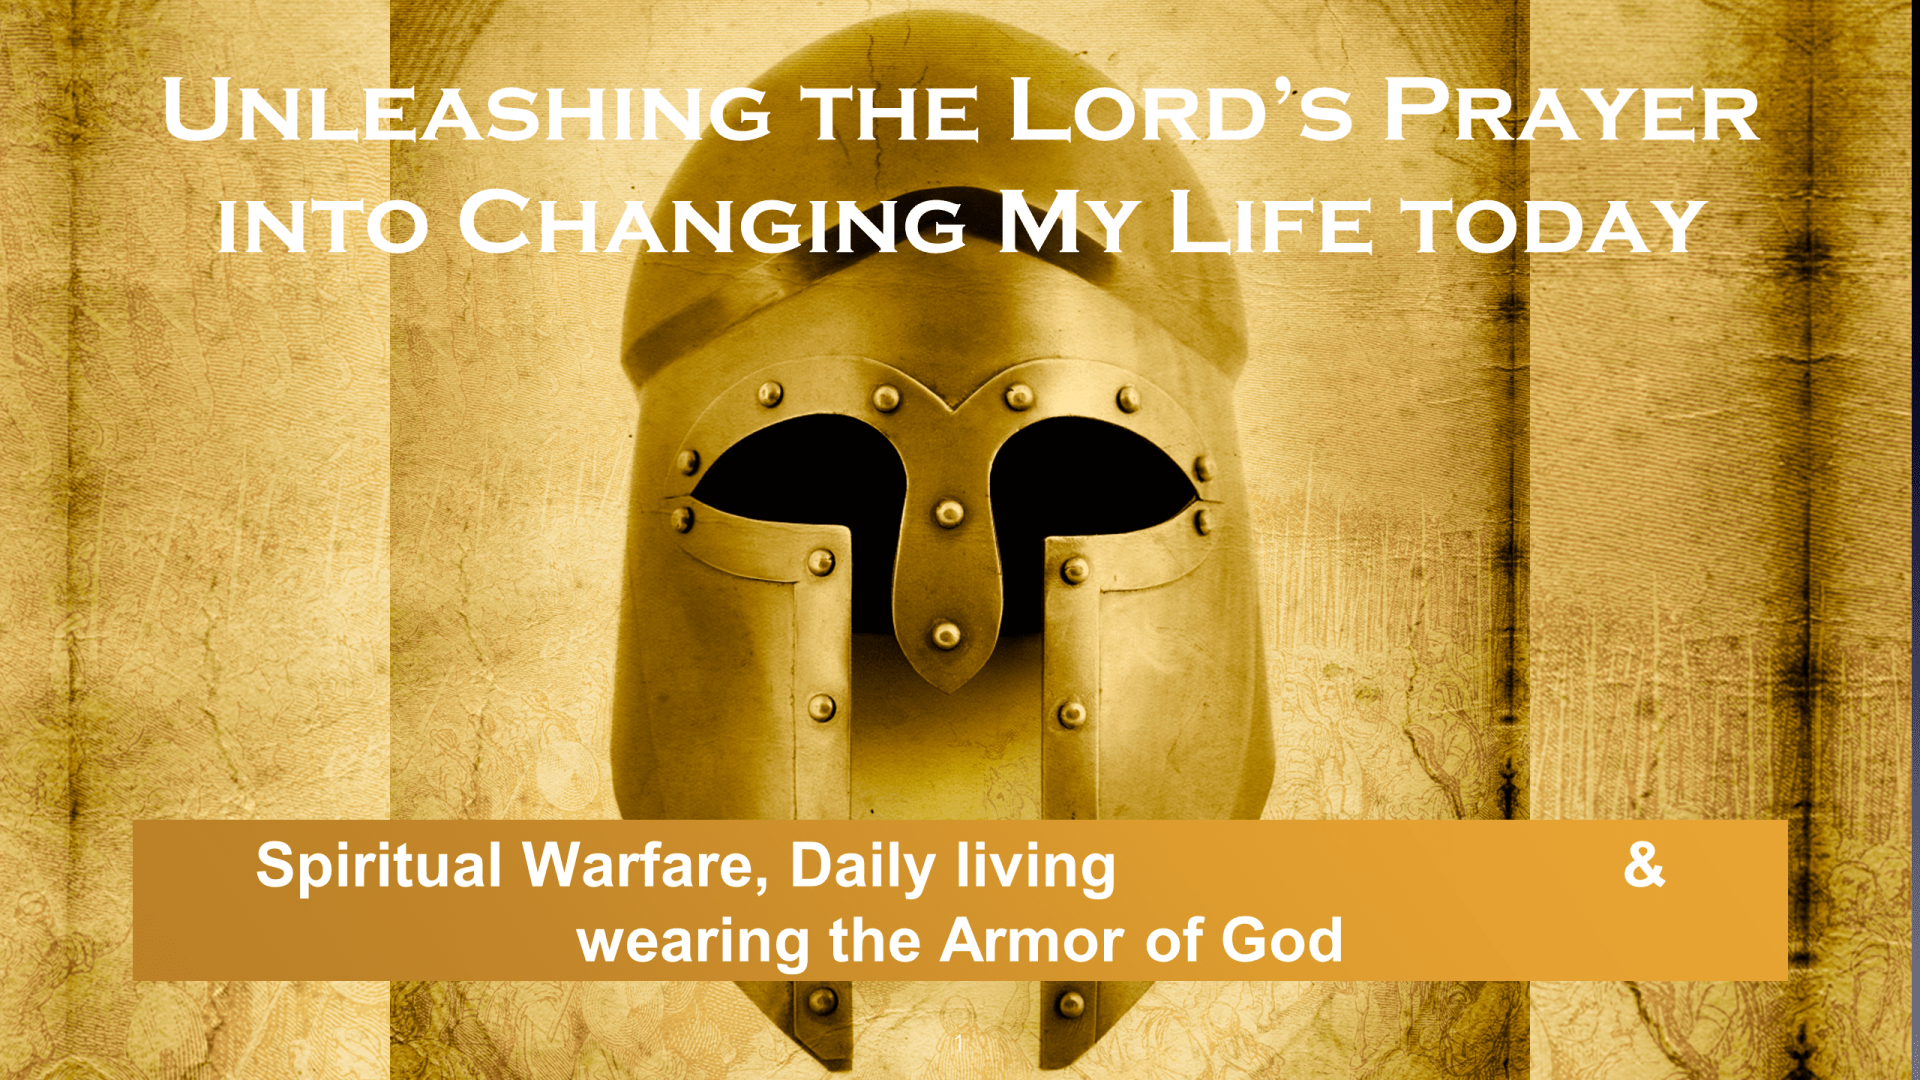 SWS-01 - Unleashing The Lord's Prayer Into Changing My Life Today (1)